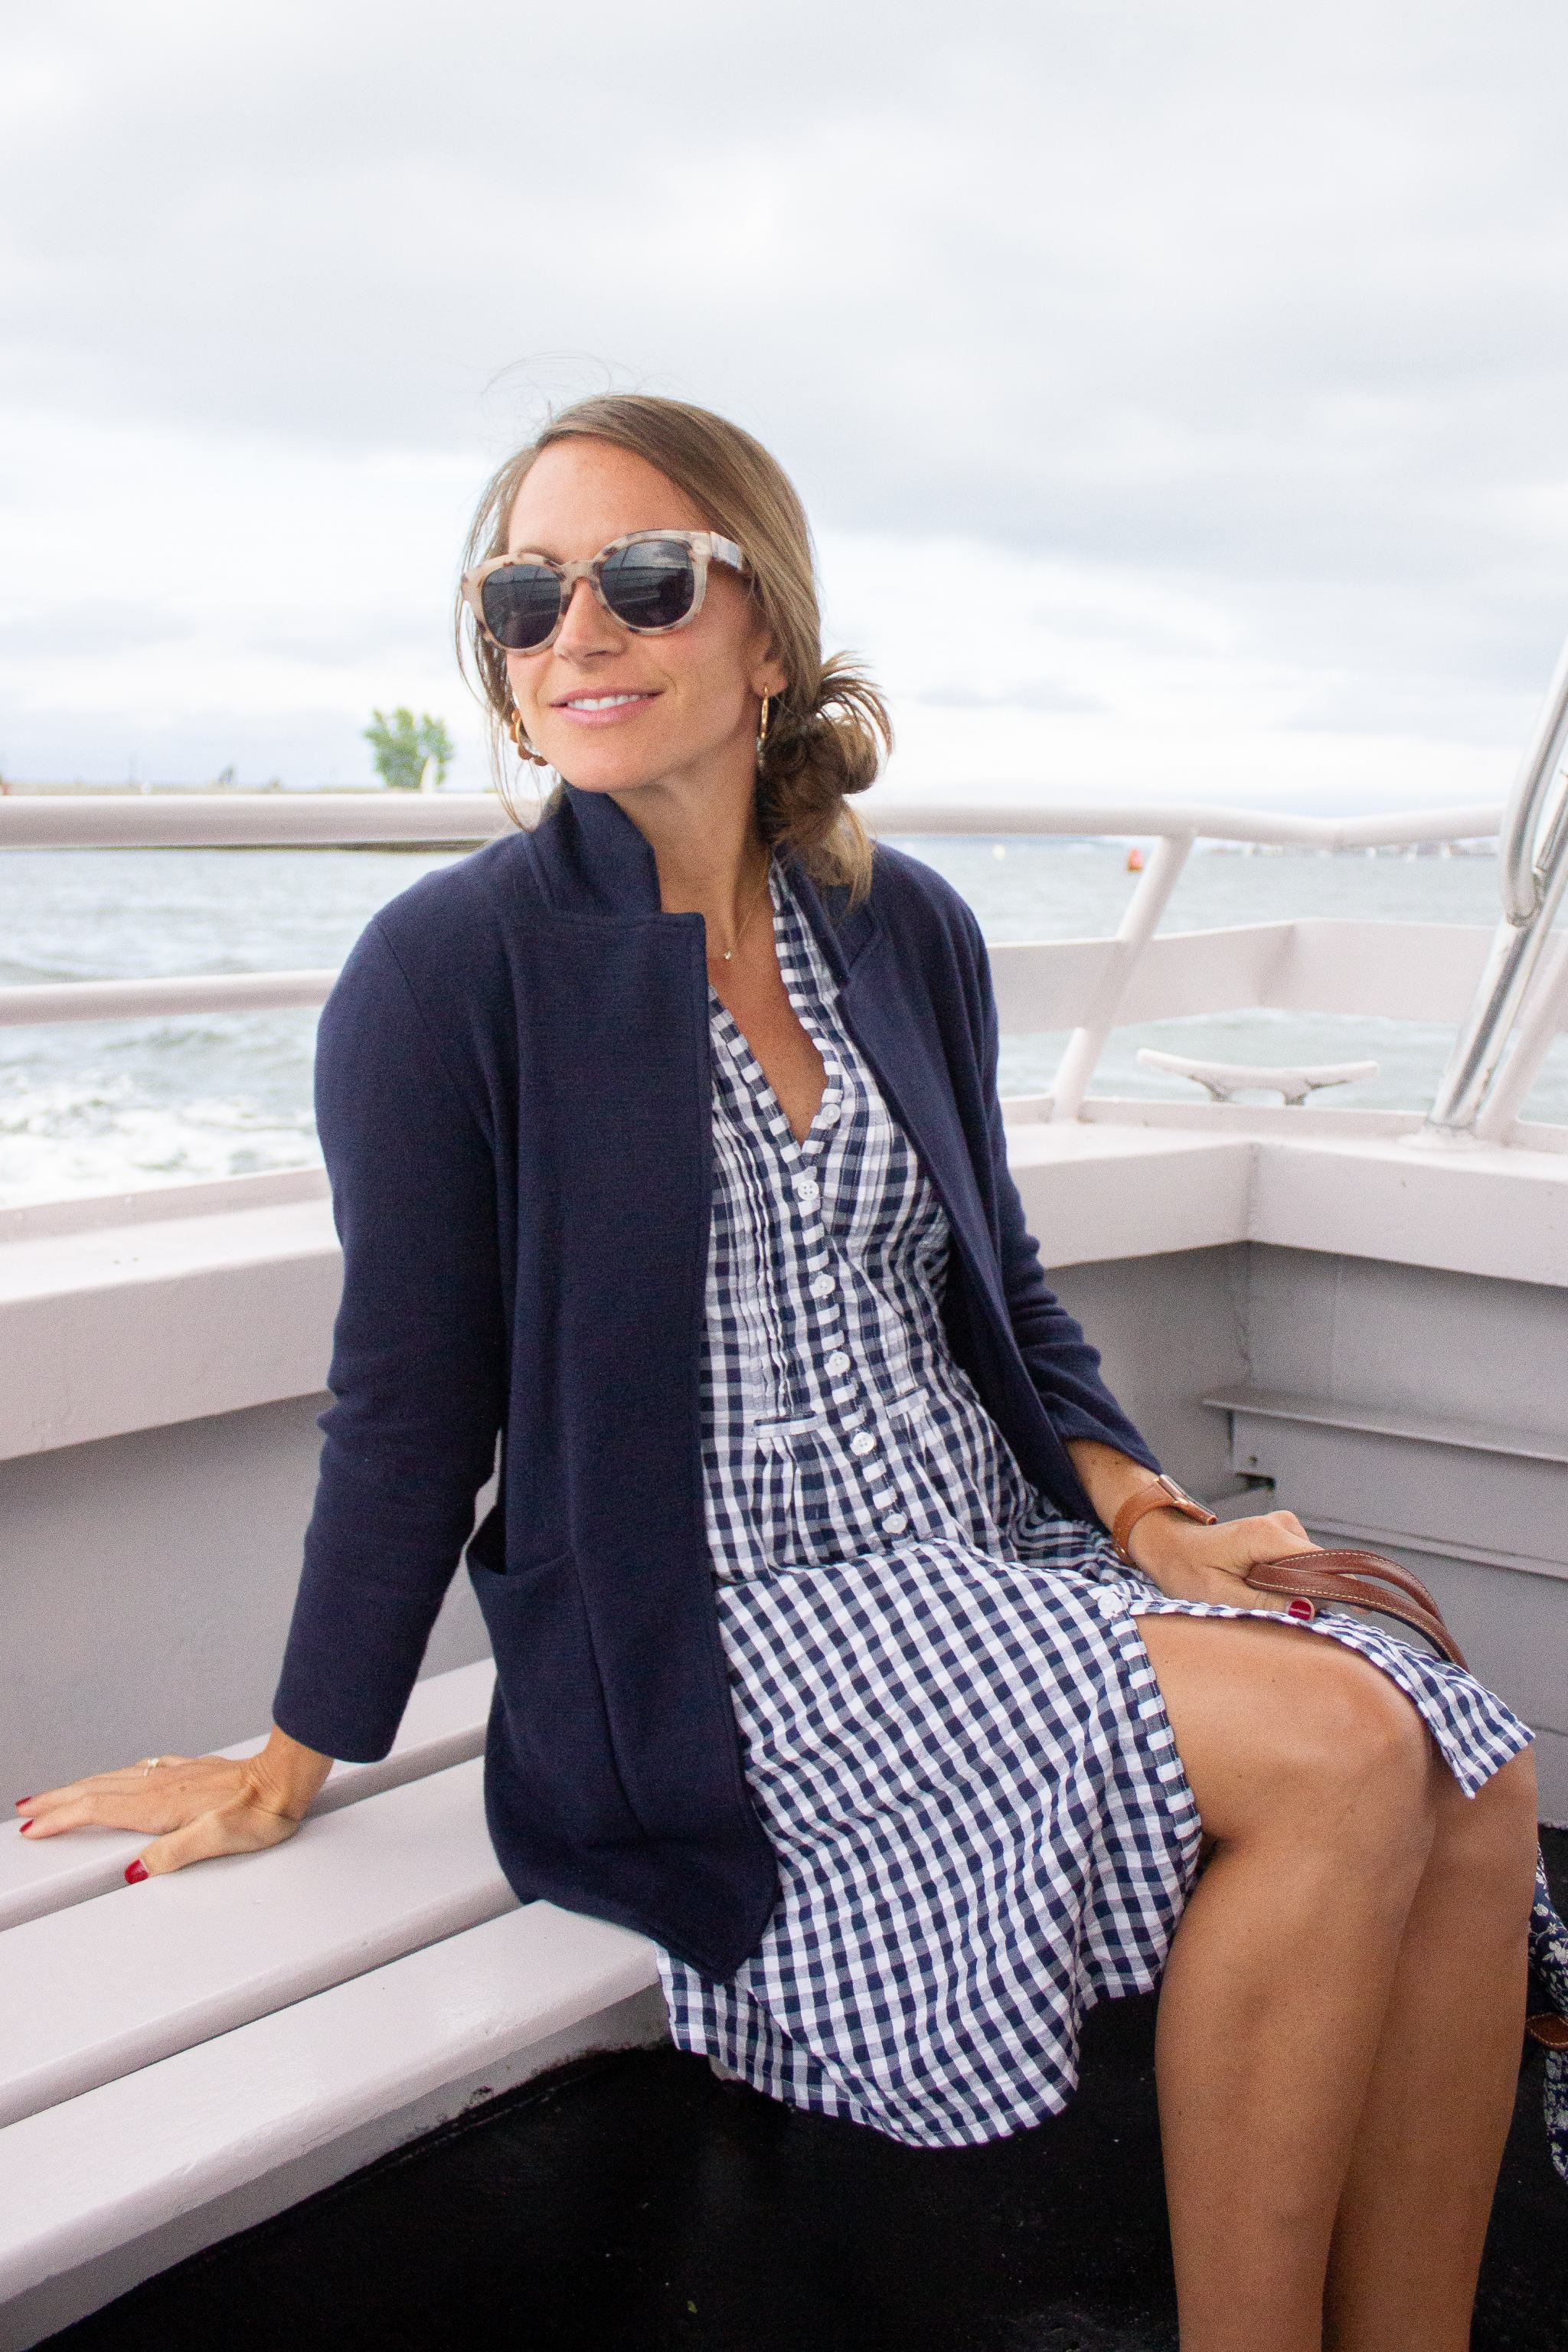 madison mathews juliette dress - madison mathews gingham dress - blue gingham dress - sweater blazer - summer style - new england style - Boston style - preppy summer style - tortoise sunglasses - dress with sneakers - white superga sneakers - gold scallop hoop earrings - walmart earrings - navy longchamp bag - boating style - nautical style